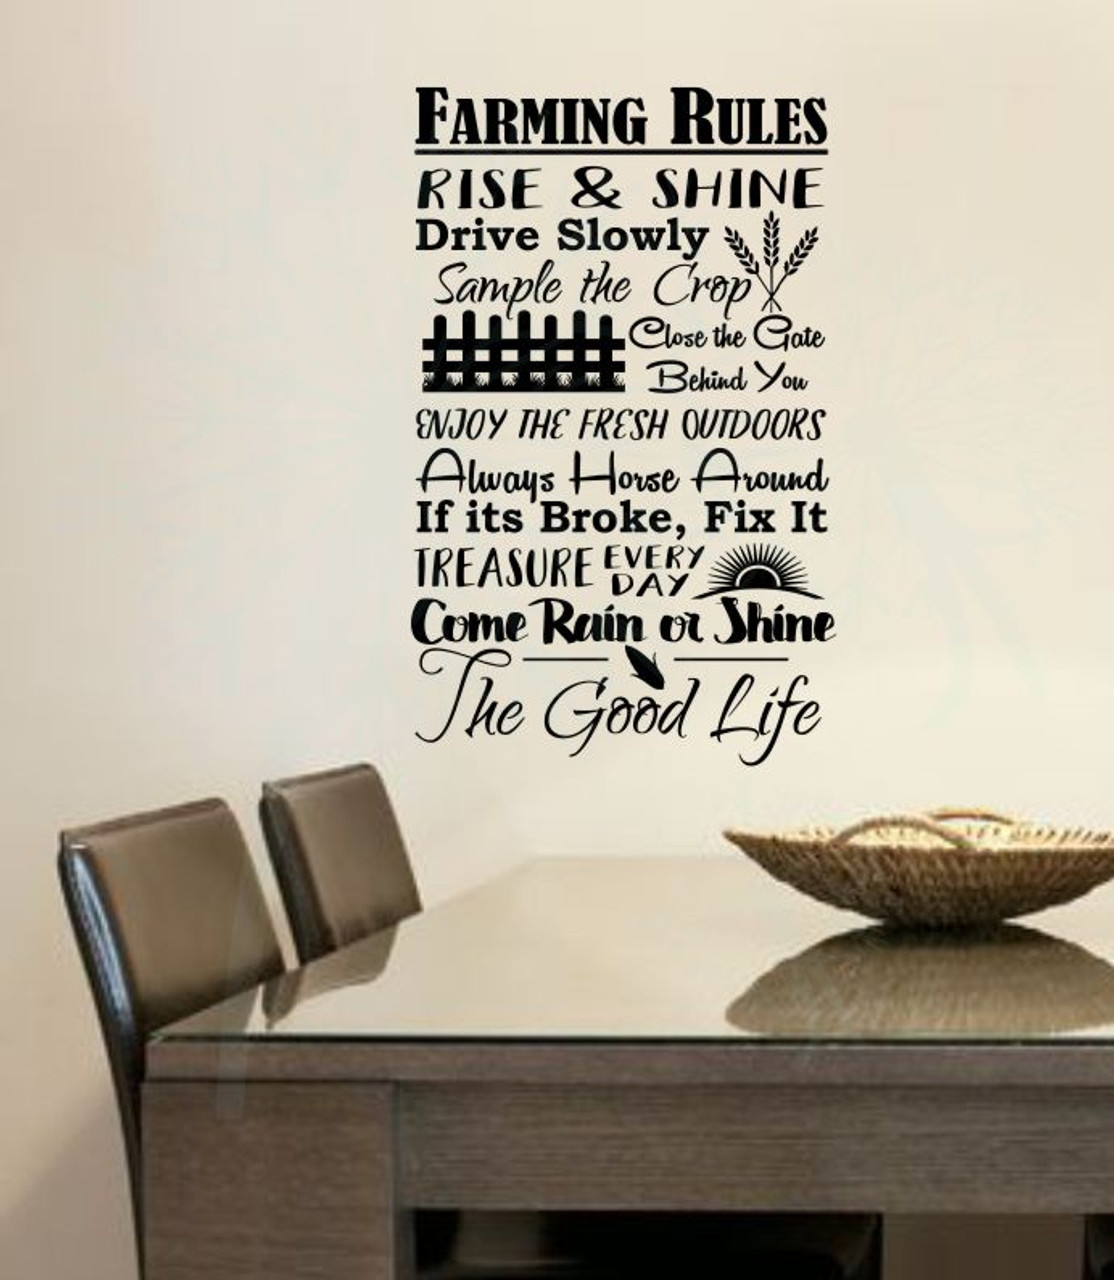 Captivating Farming Rules The Good Life Wall Lettering Vinyl Stickers Decal Quotes Black